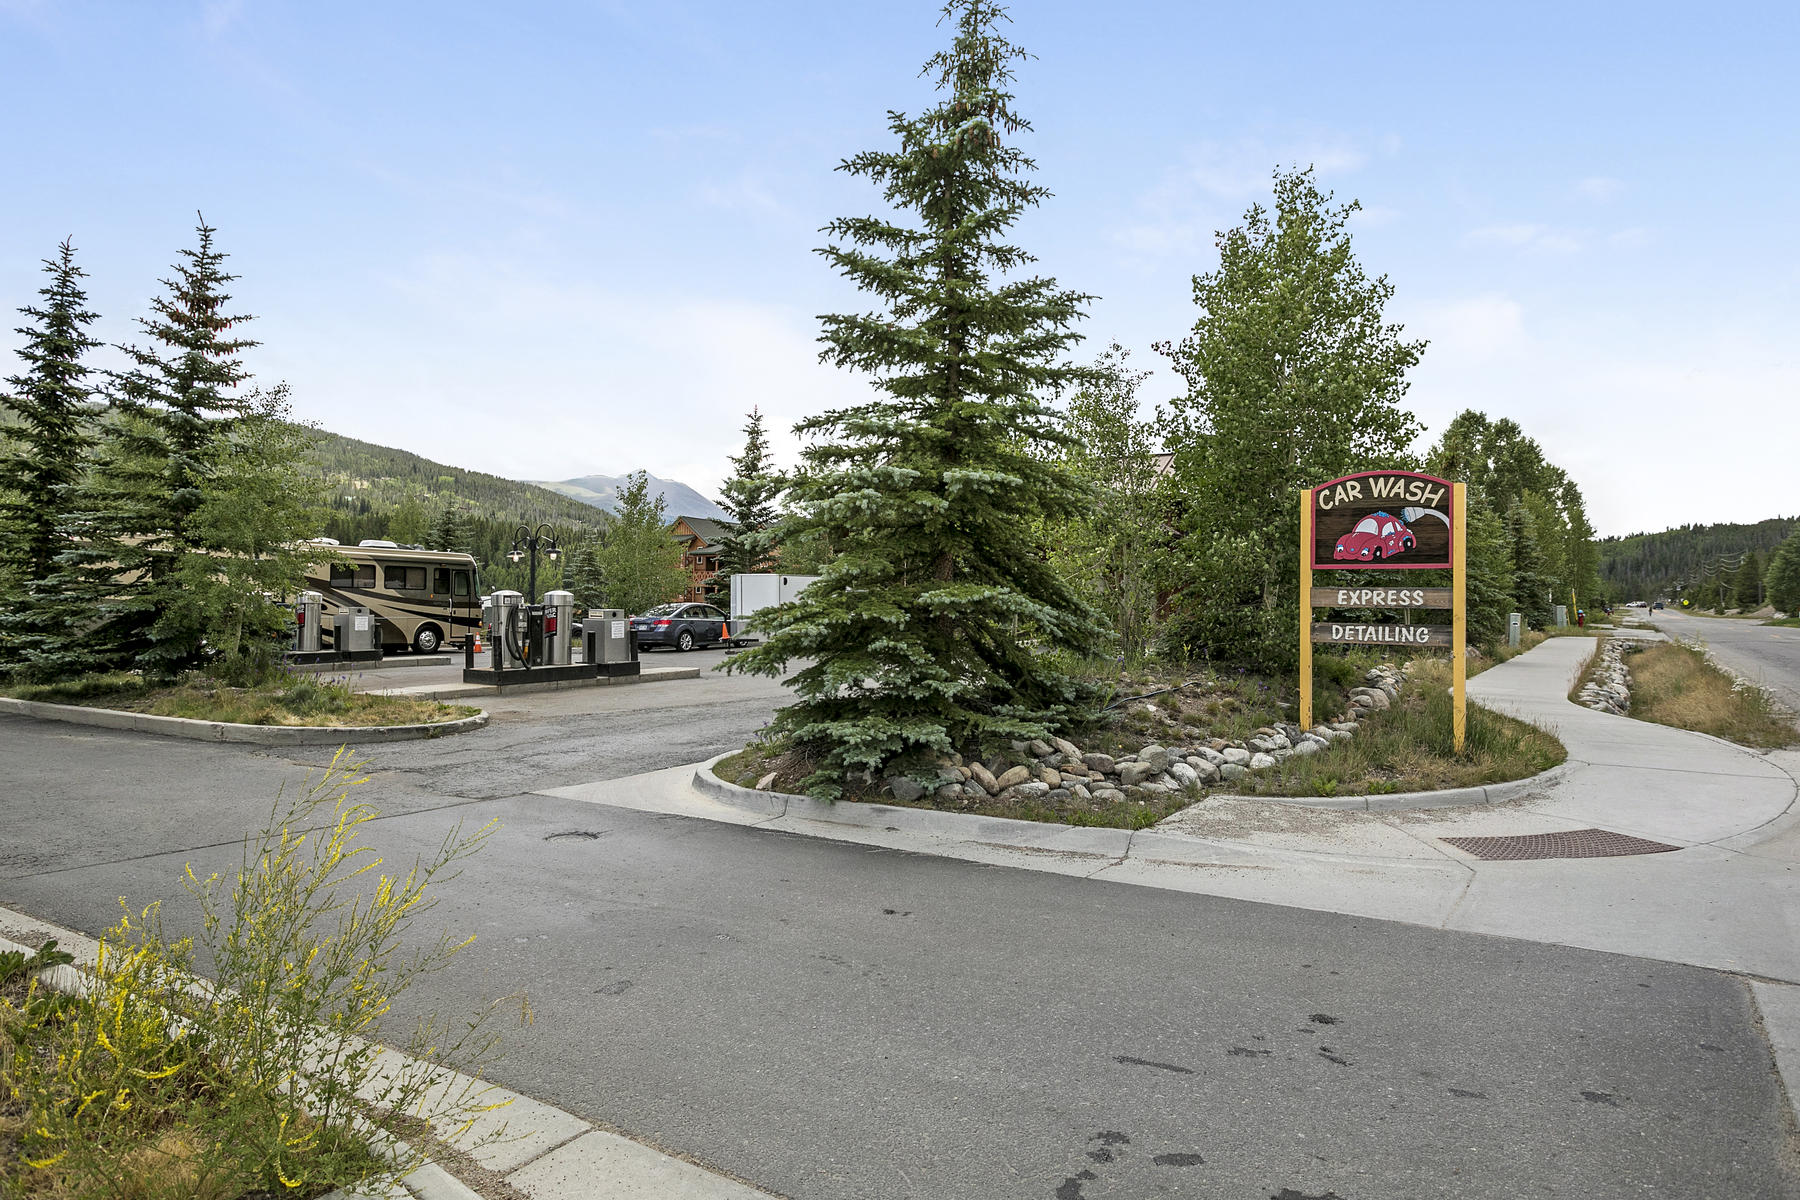 Additional photo for property listing at Airport Road Carwash 1690 Airport Road #0 Breckenridge, Colorado 80424 Estados Unidos